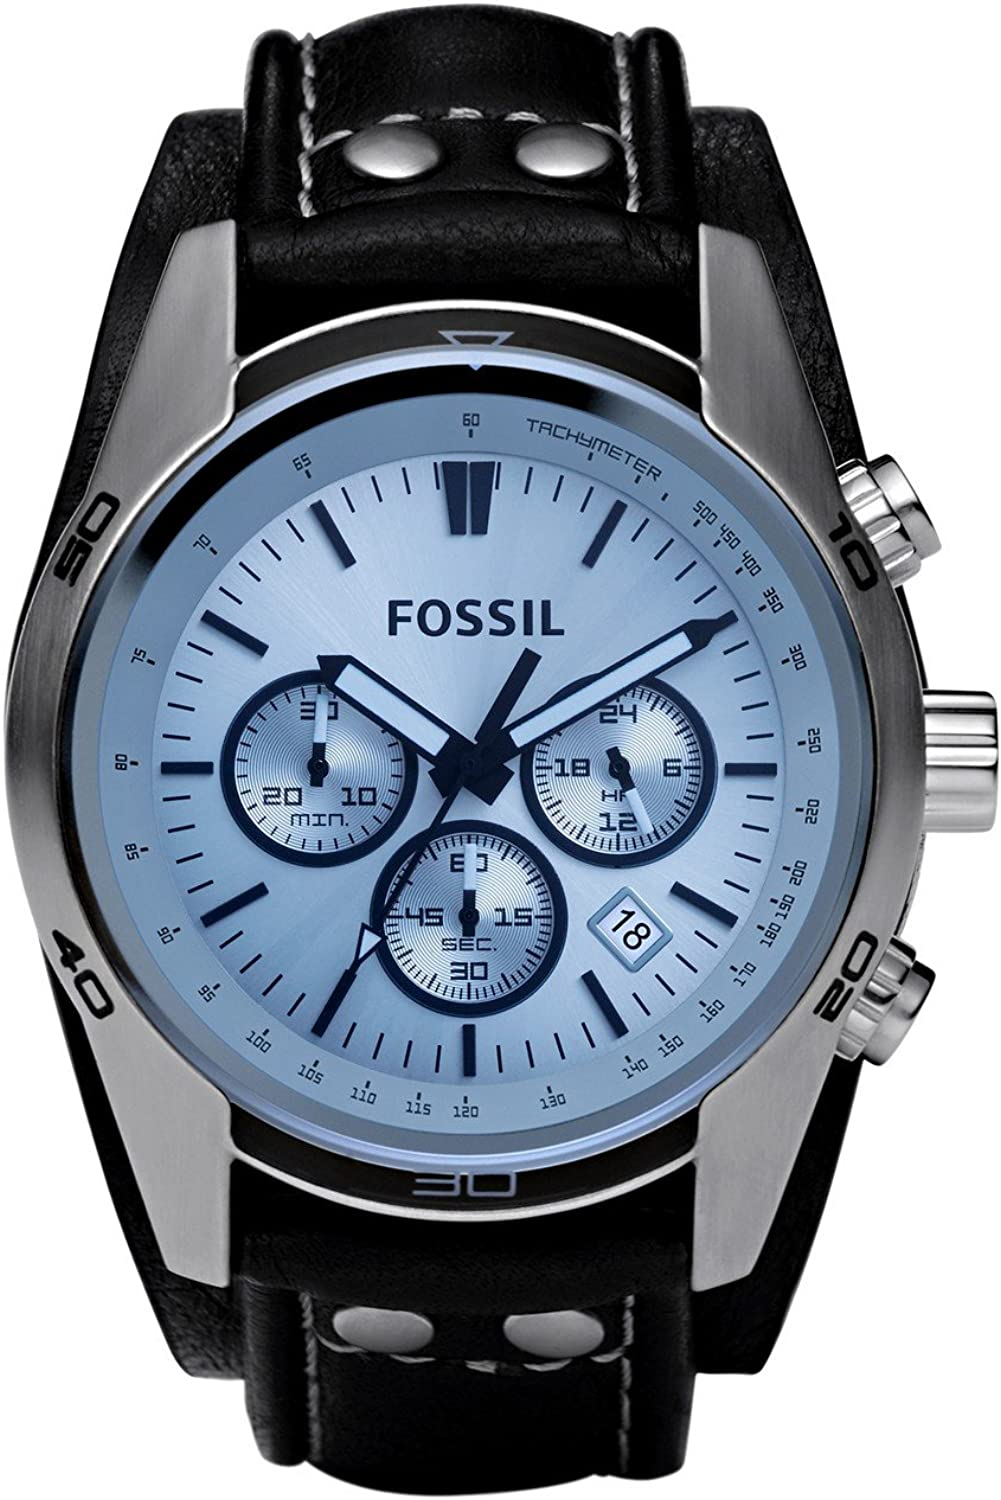 Fossil Men's Chronograph Quartz Watch with Leather Strap